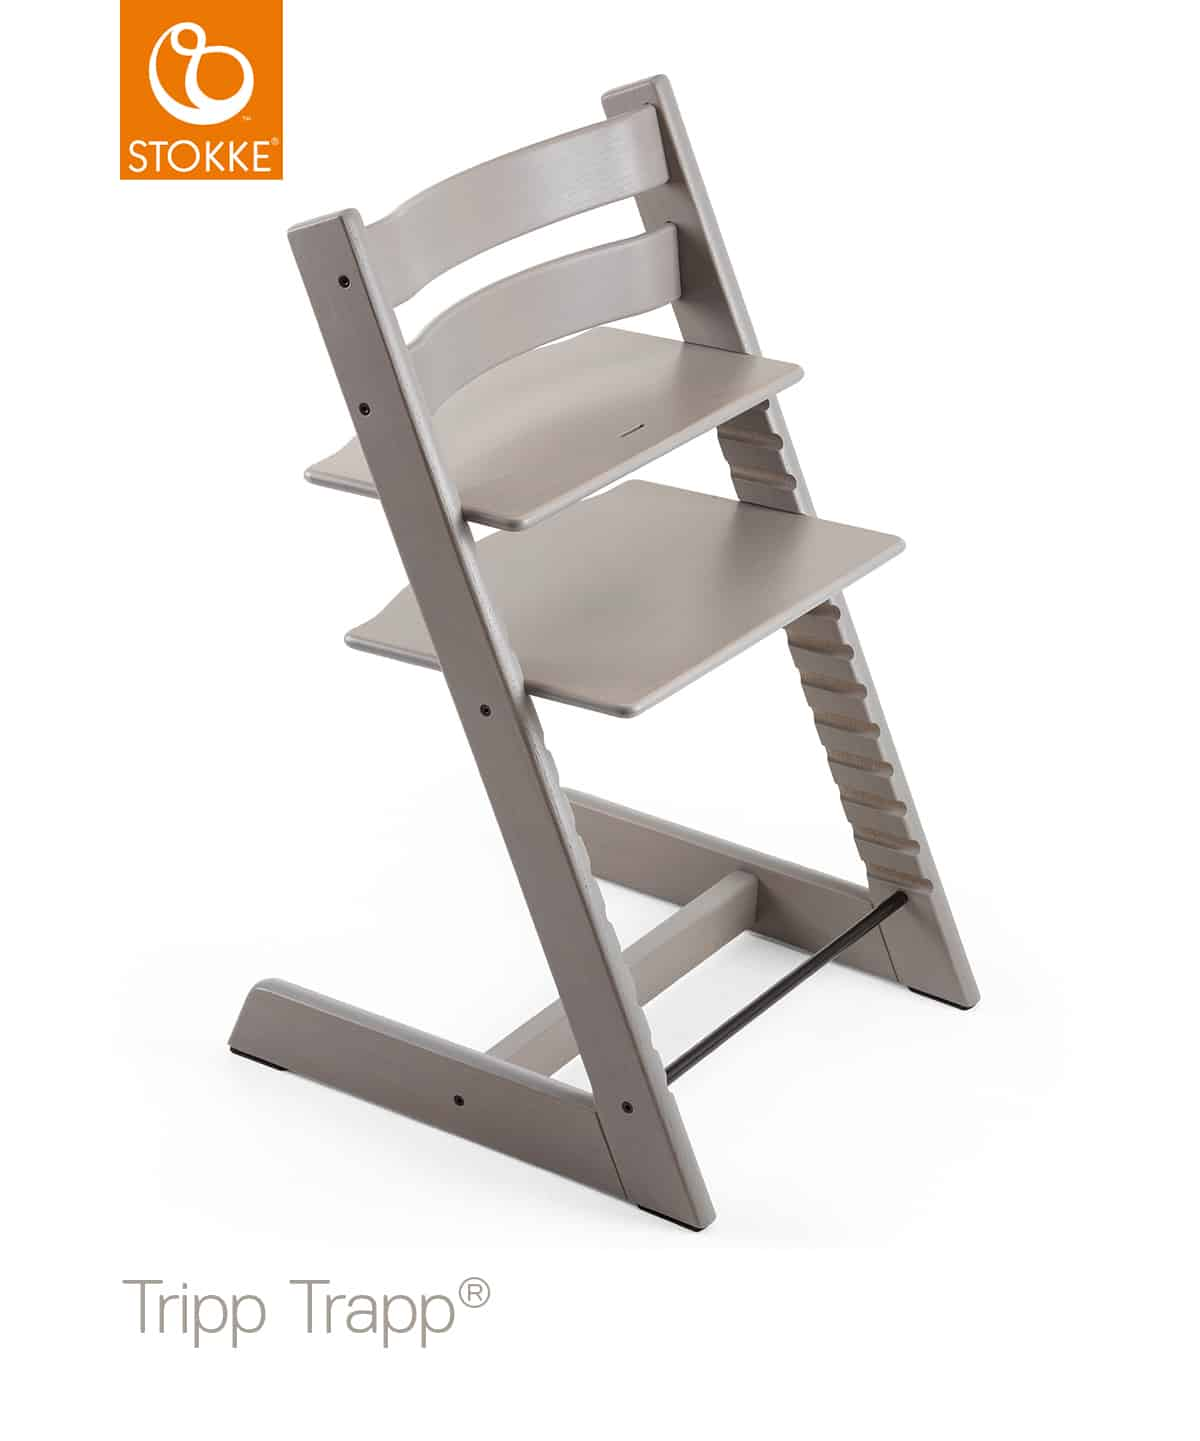 stokke tripp trapp h jstol oak grey k b stokke hos k re b rn. Black Bedroom Furniture Sets. Home Design Ideas